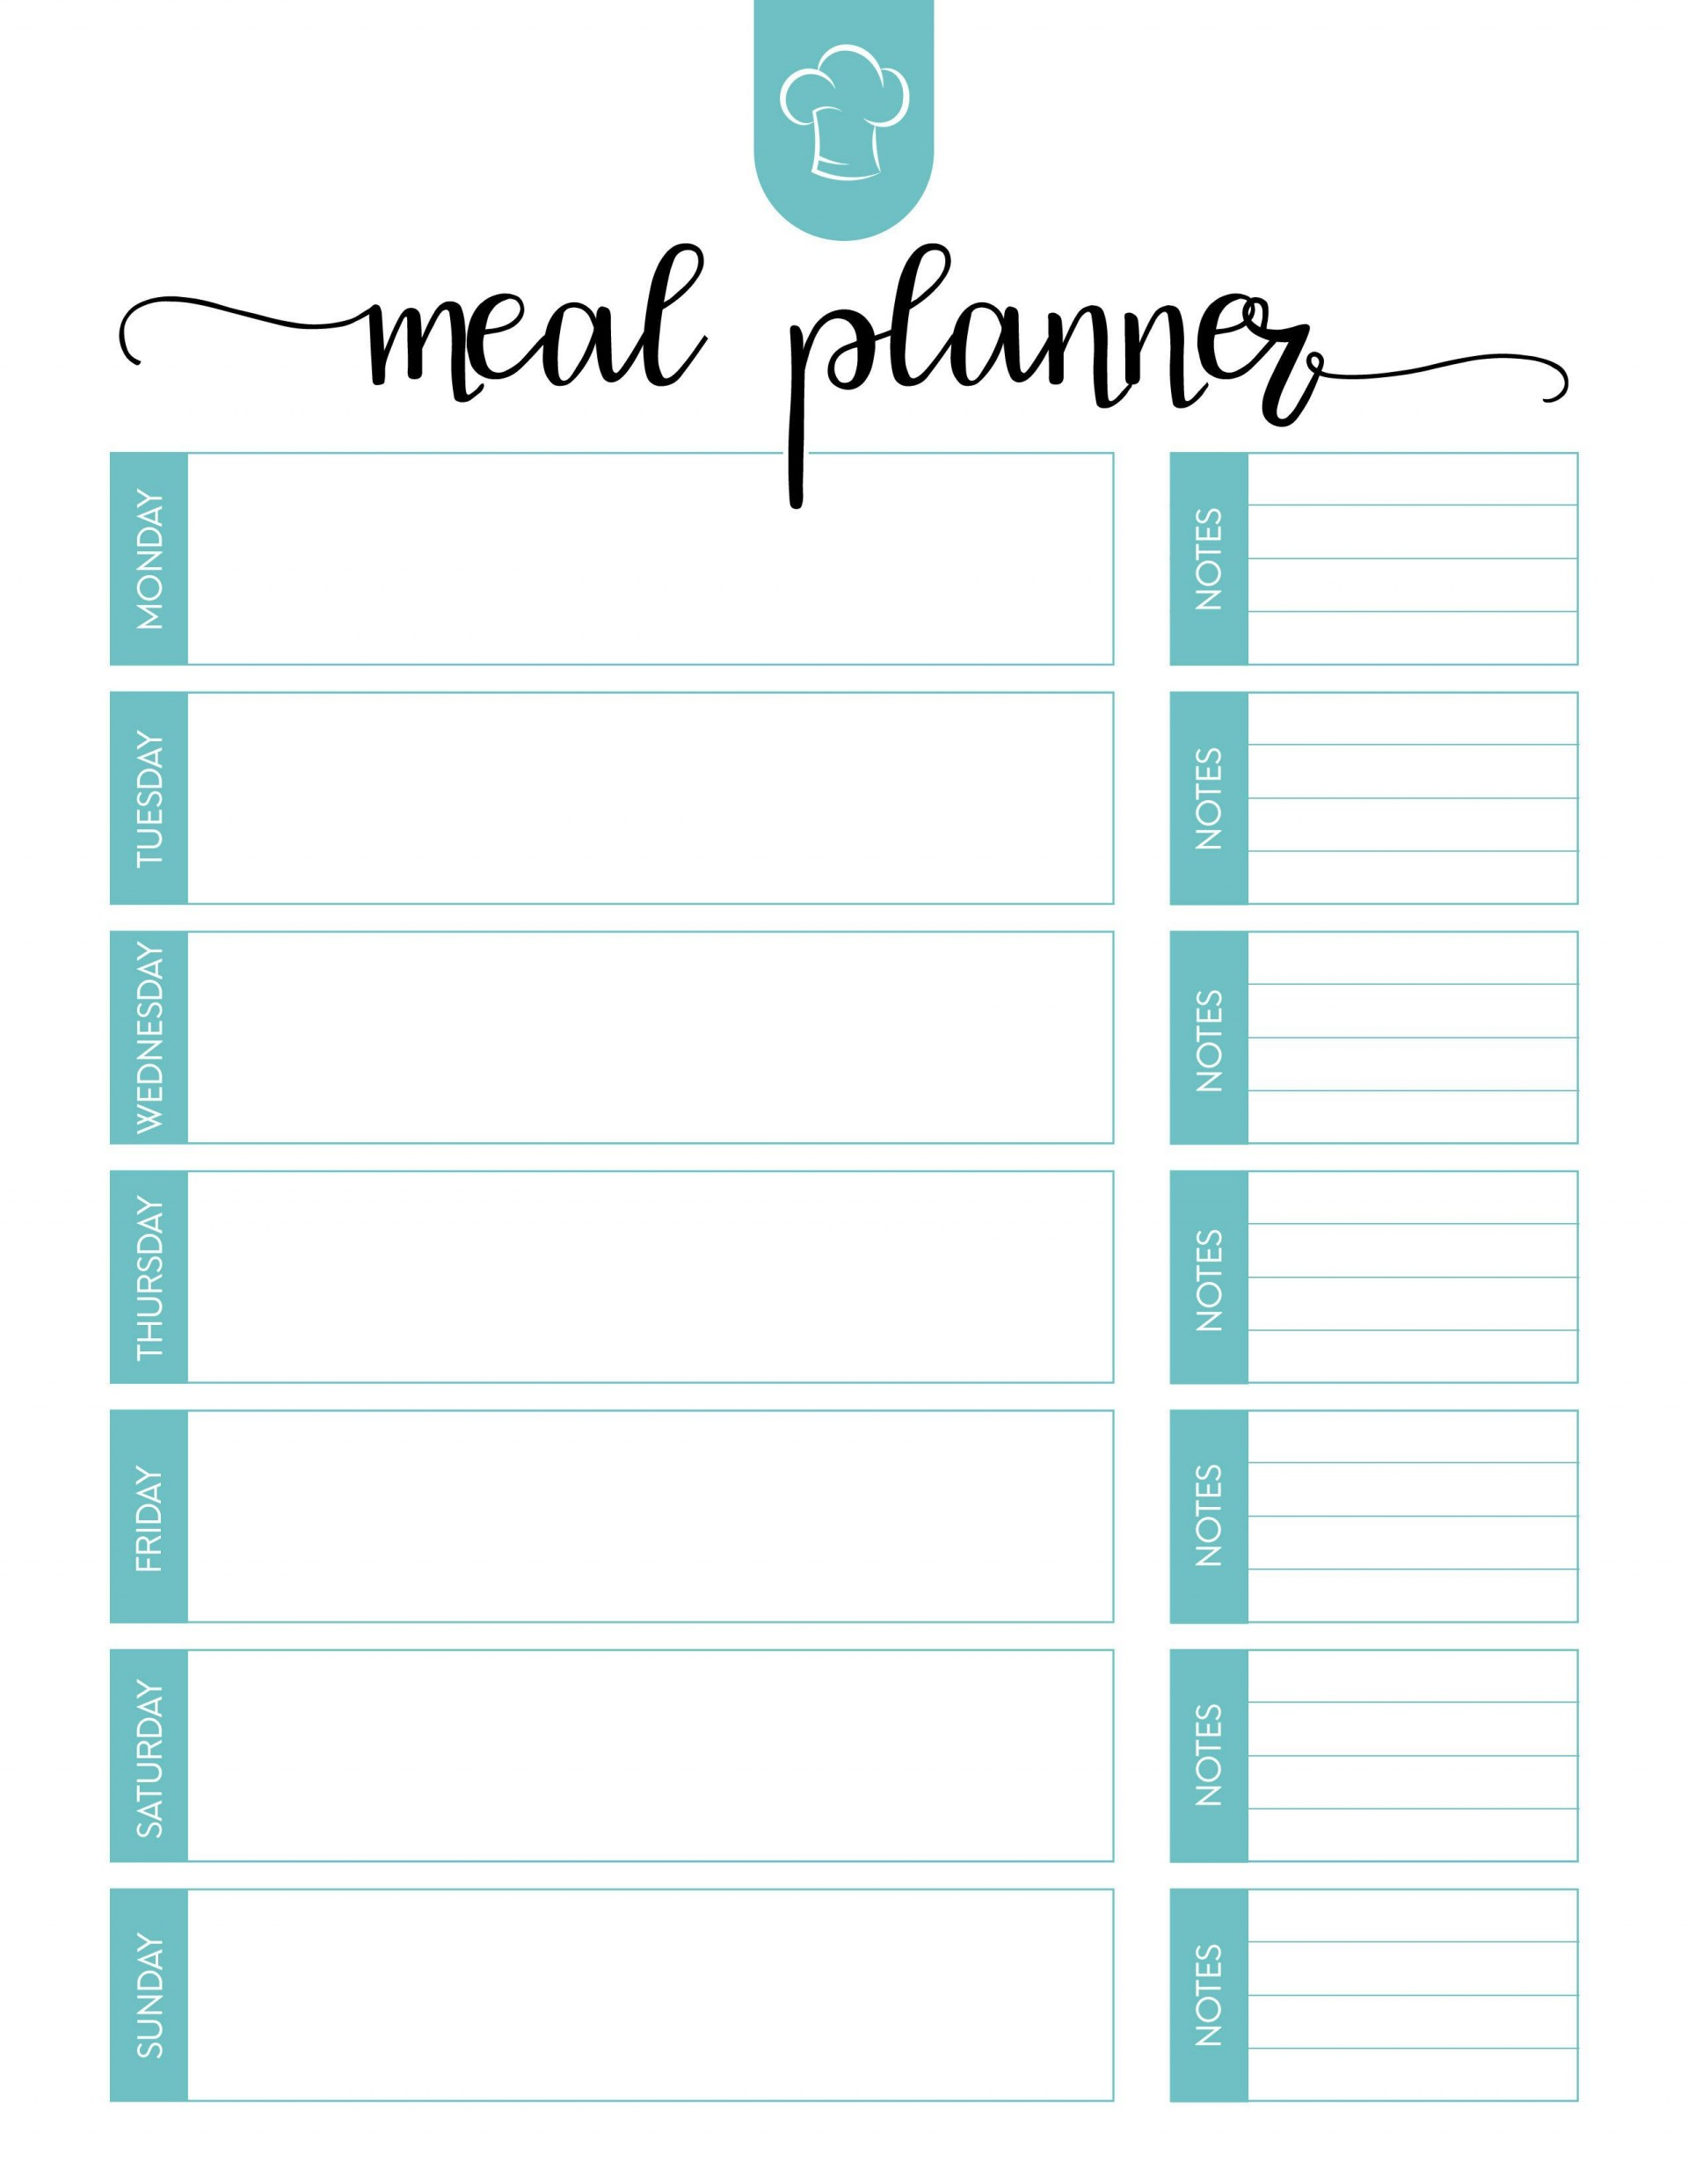 006 Fearsome 2 Week Meal Plan Printable Inspiration 1920